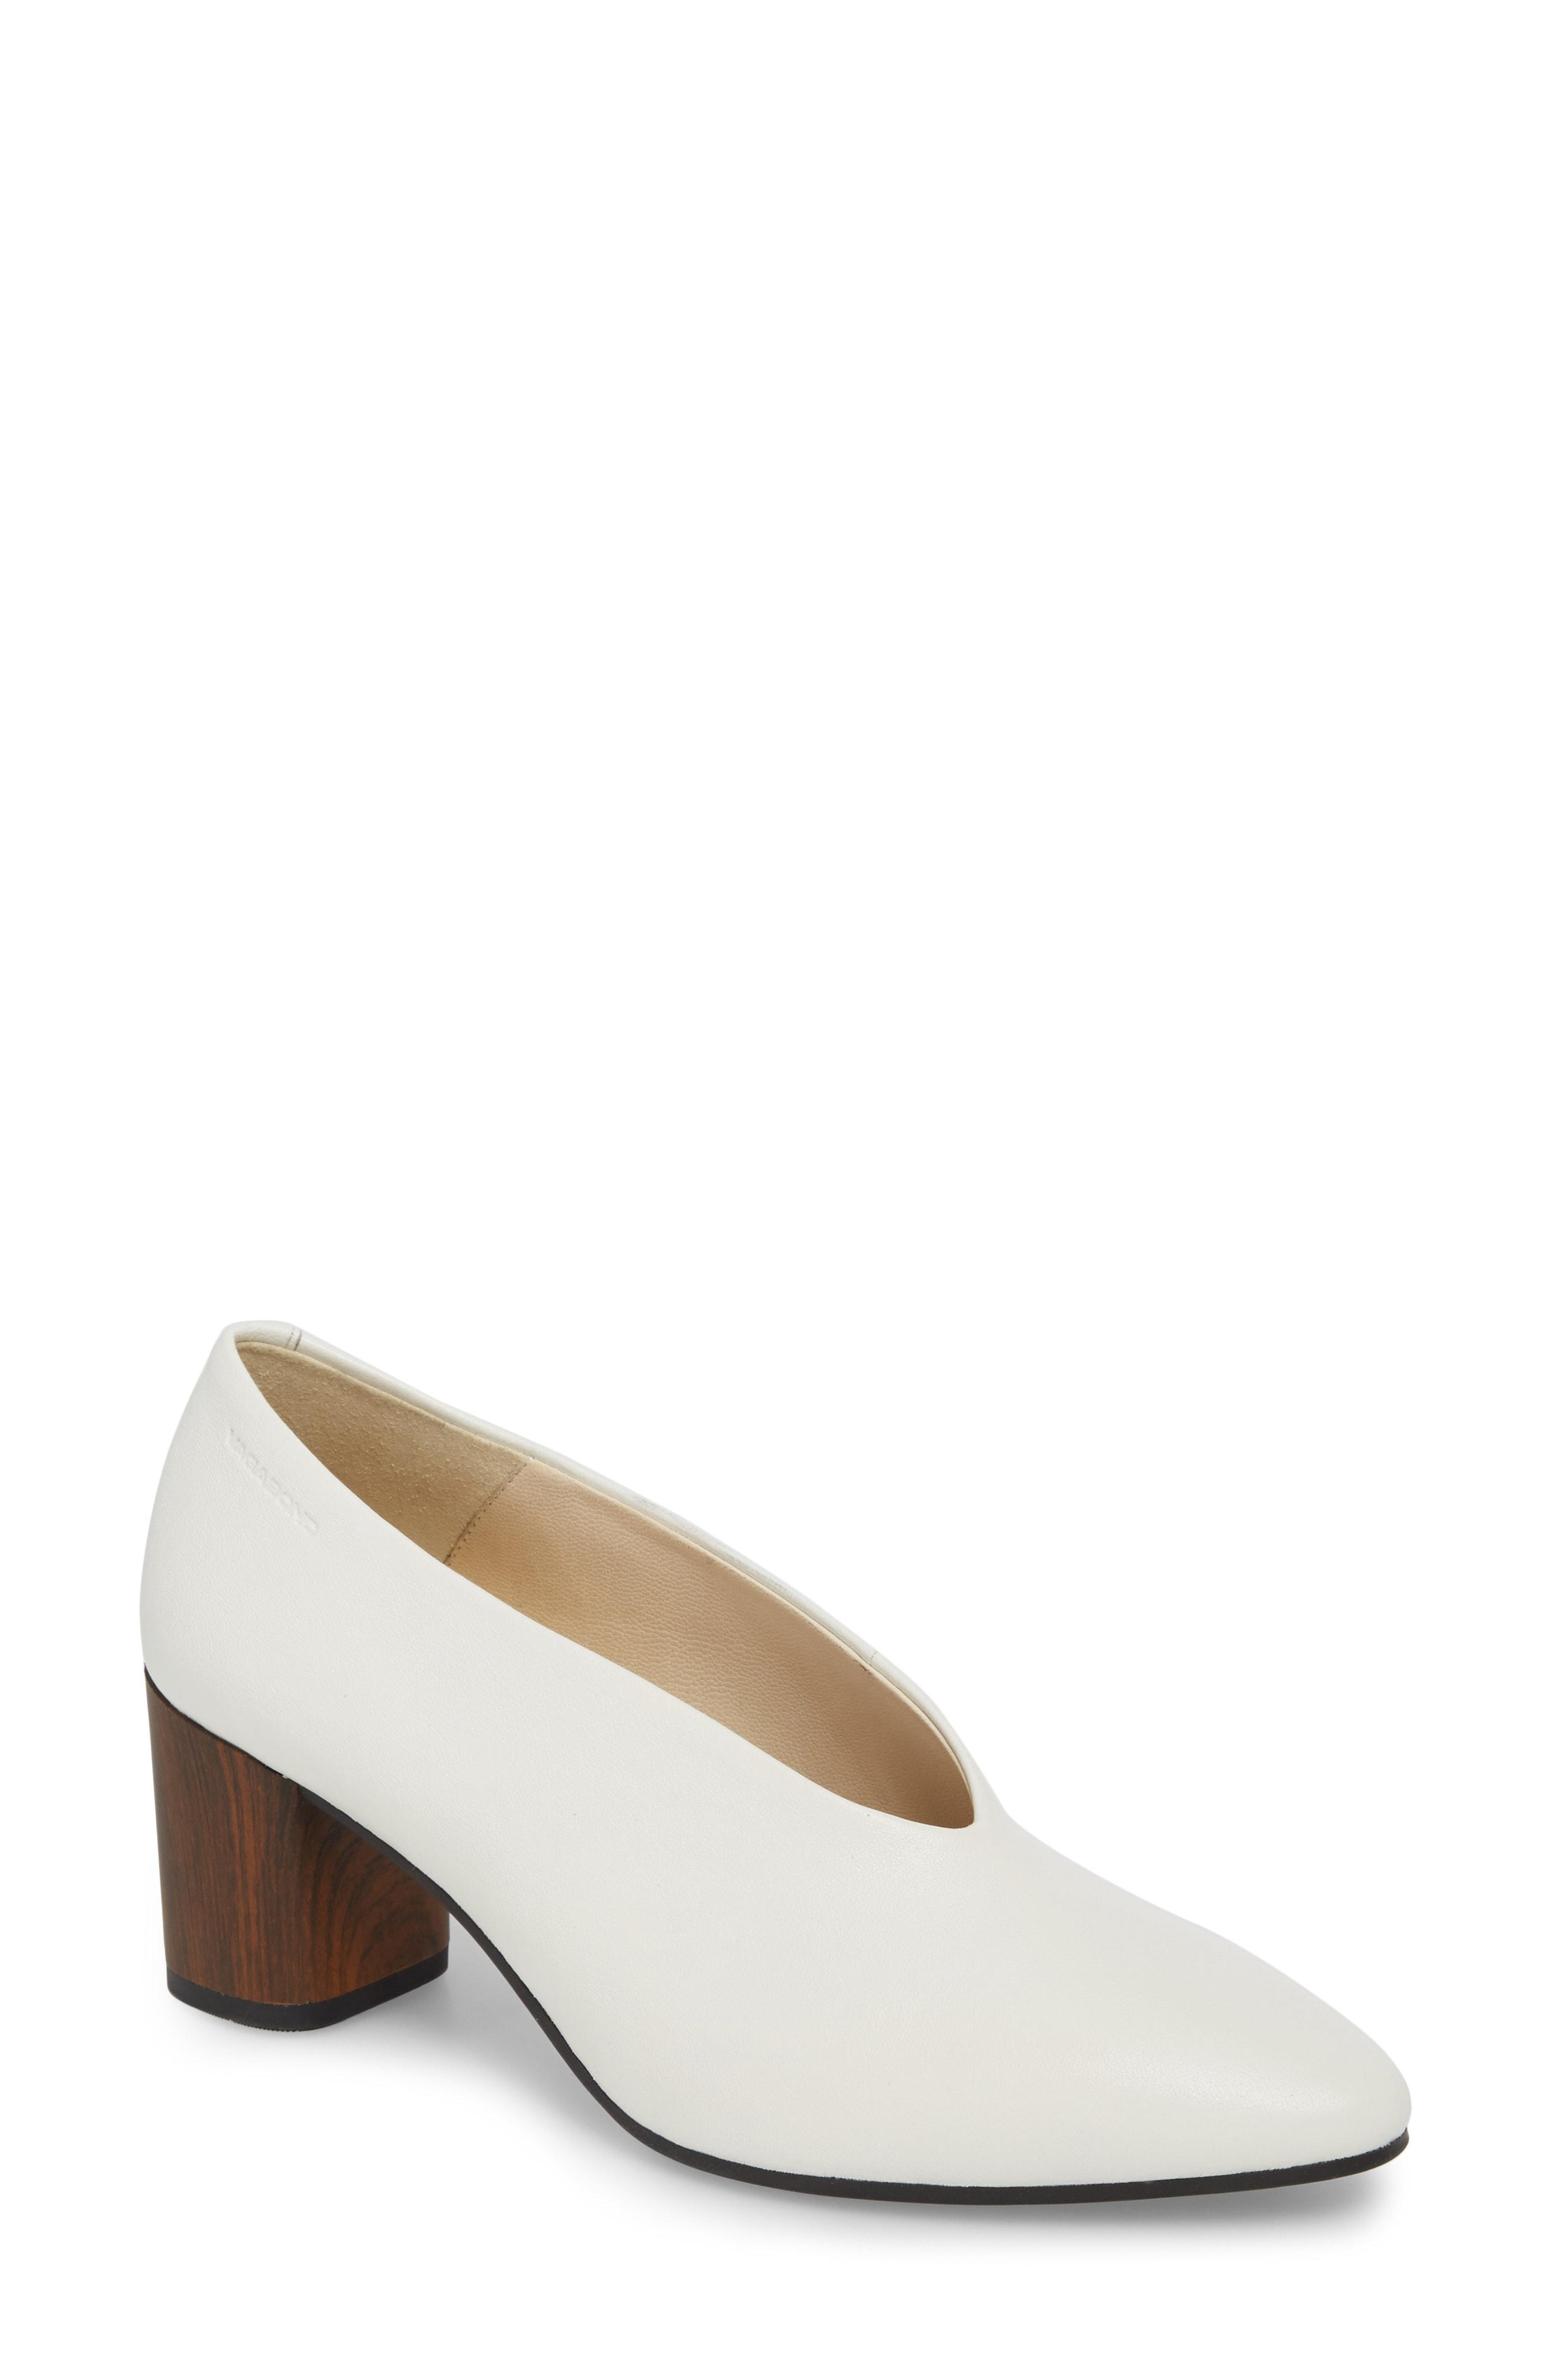 1f5c0413032 Vagabond Shoemakers Eve Pump in Natural - Lyst